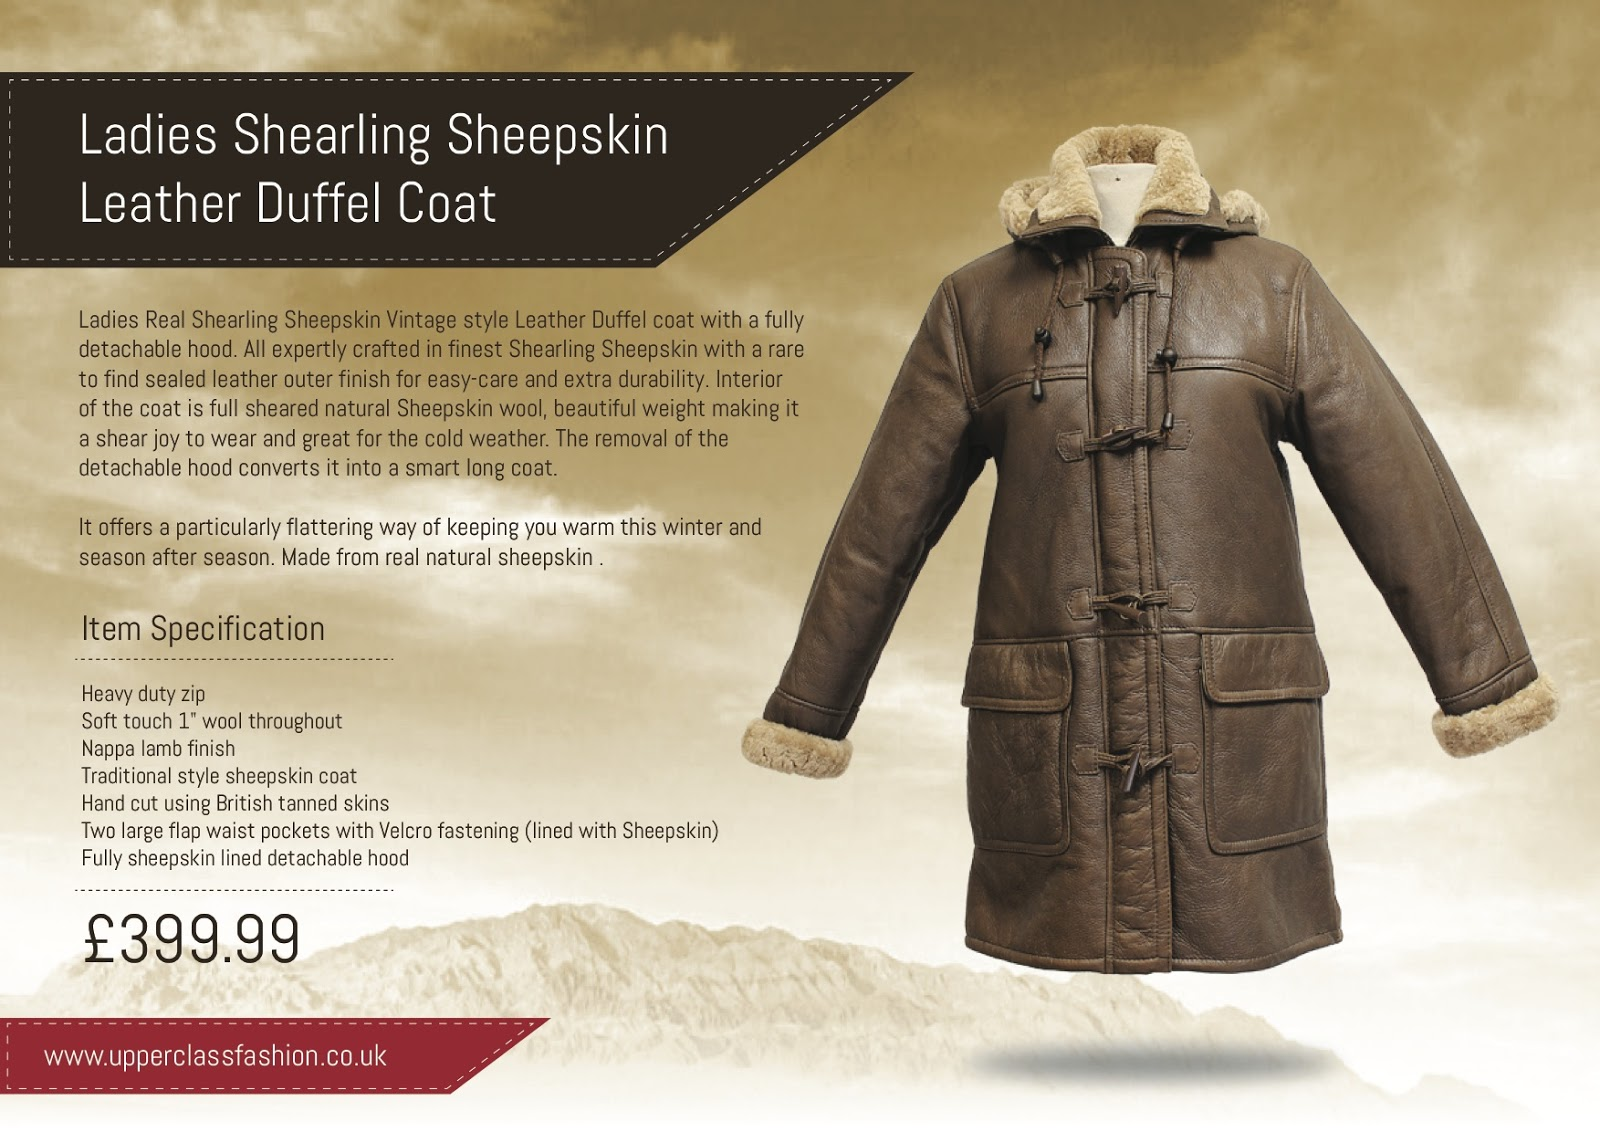 Ladies shearling jackets to wear